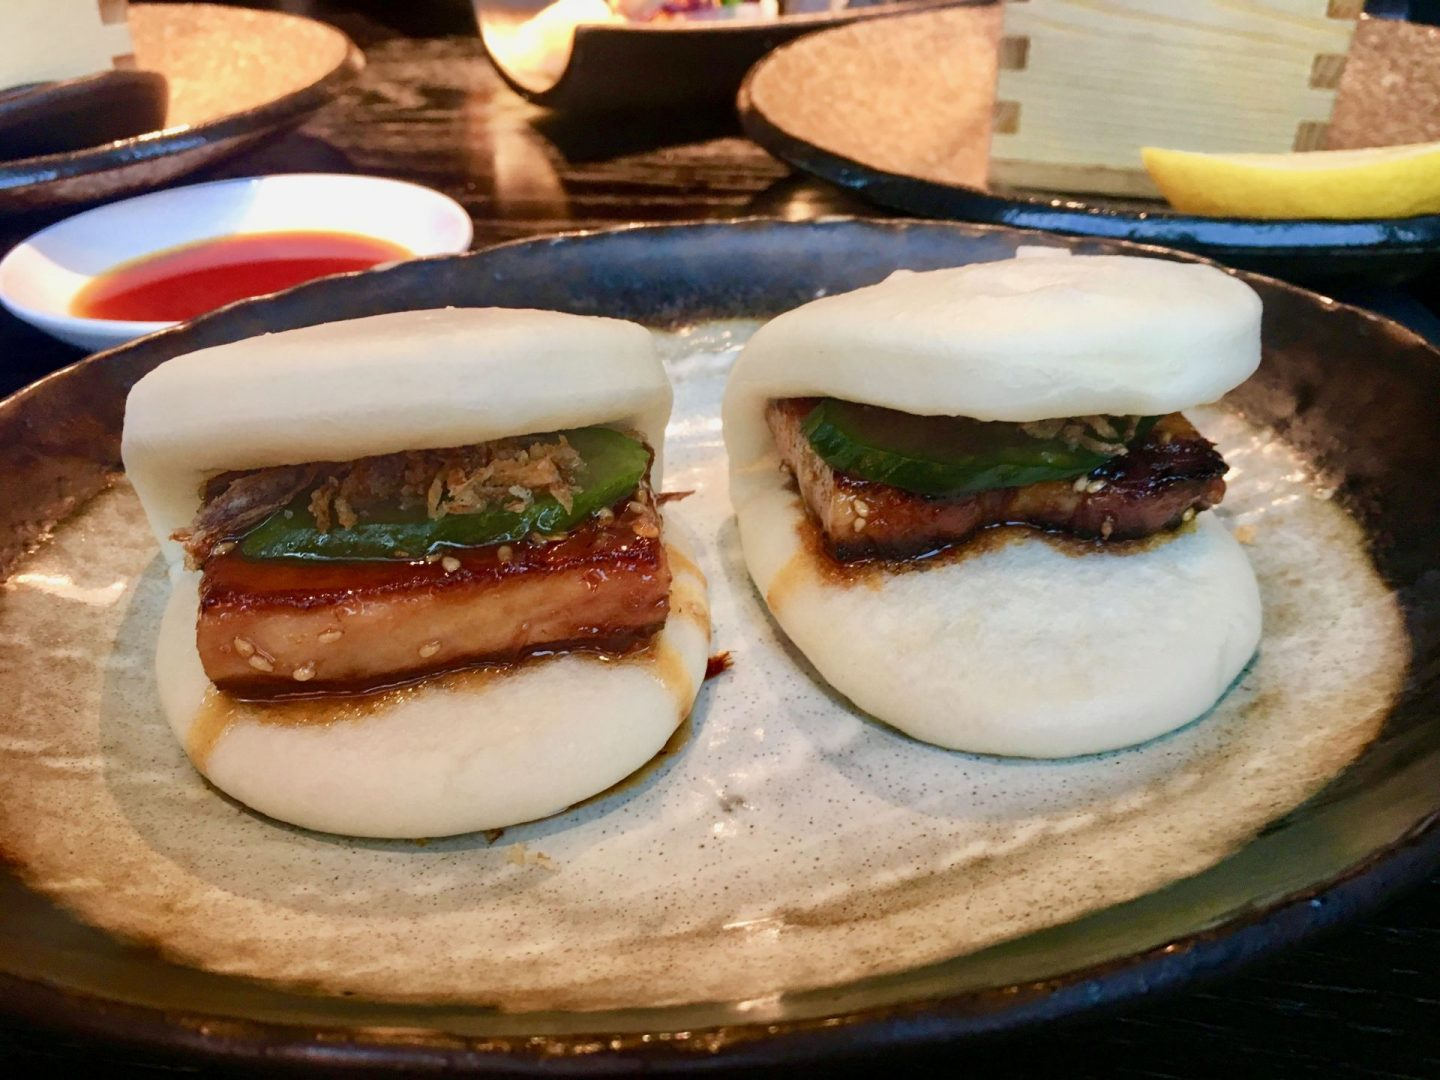 A pair of bao buns with pork belly inside, sat next to each other on a plain plate at issho sushi leeds